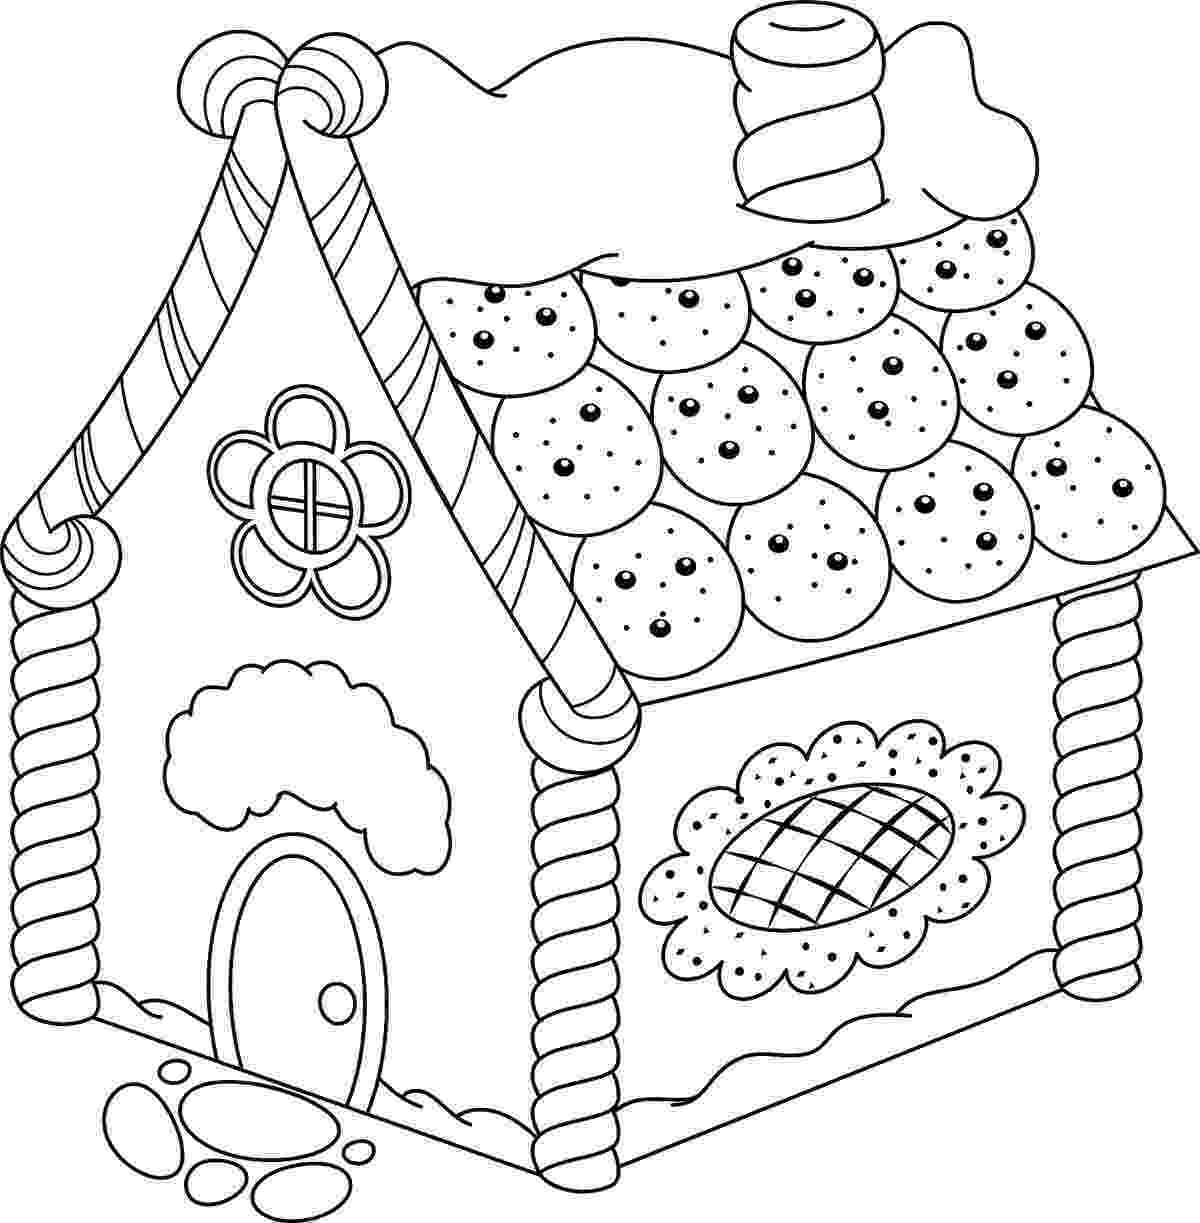 gingerbread color gingerbread house coloring pages printable free coloring gingerbread color